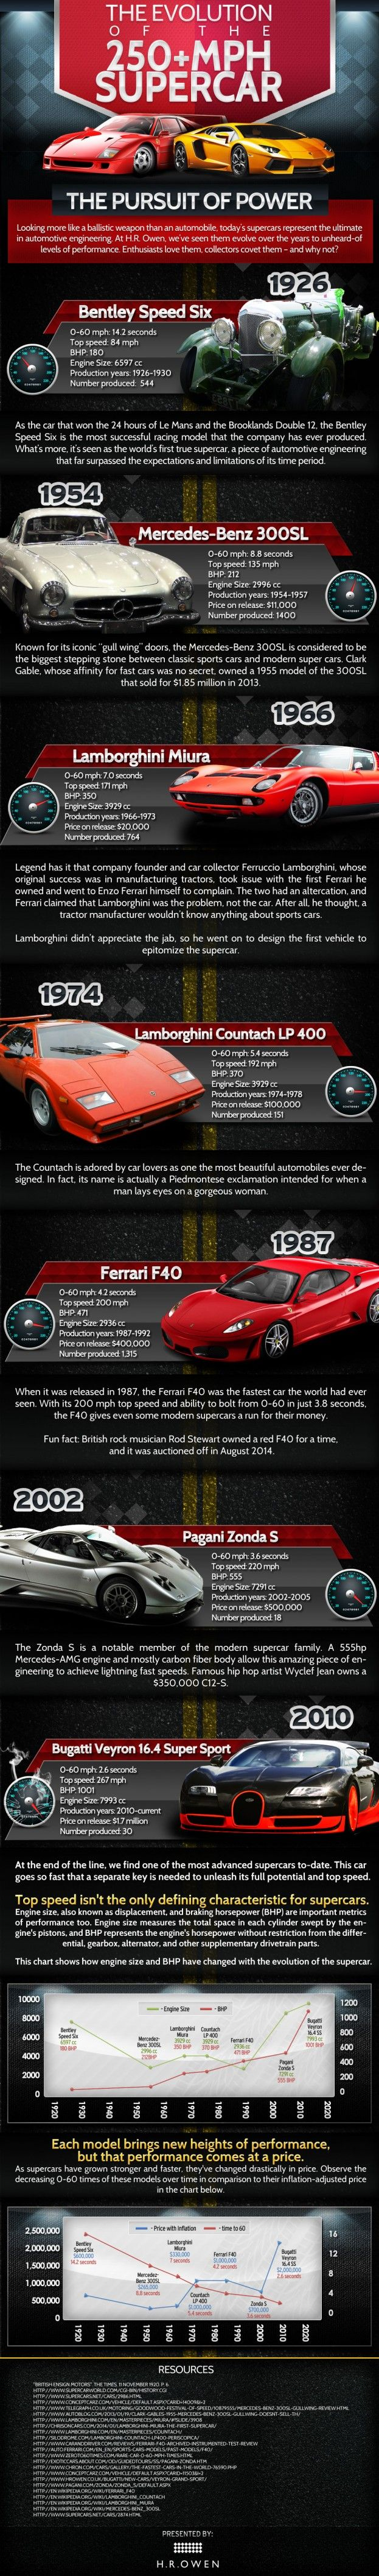 148 best Car Infographics images on Pinterest | Infographic ...